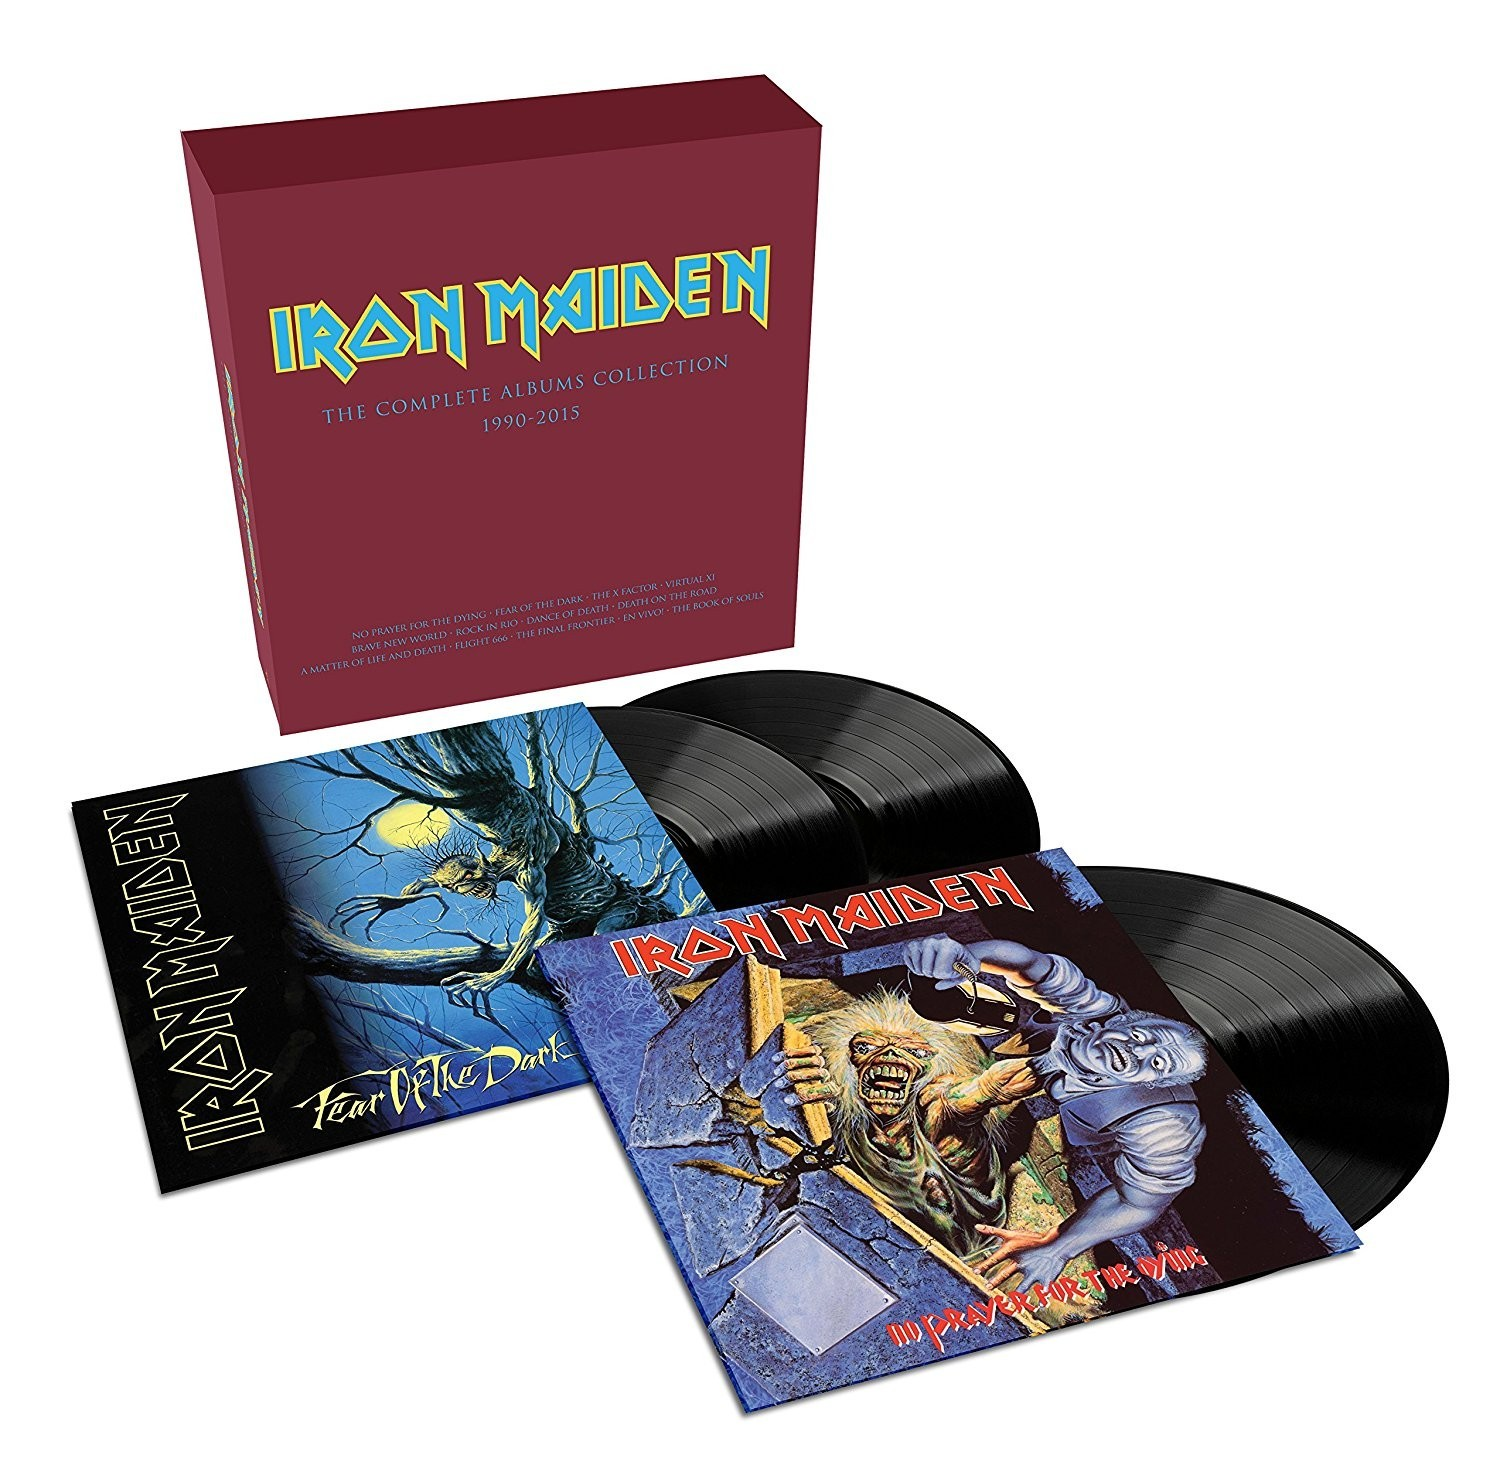 Iron Maiden - The Complete Album Collection 1990-2015